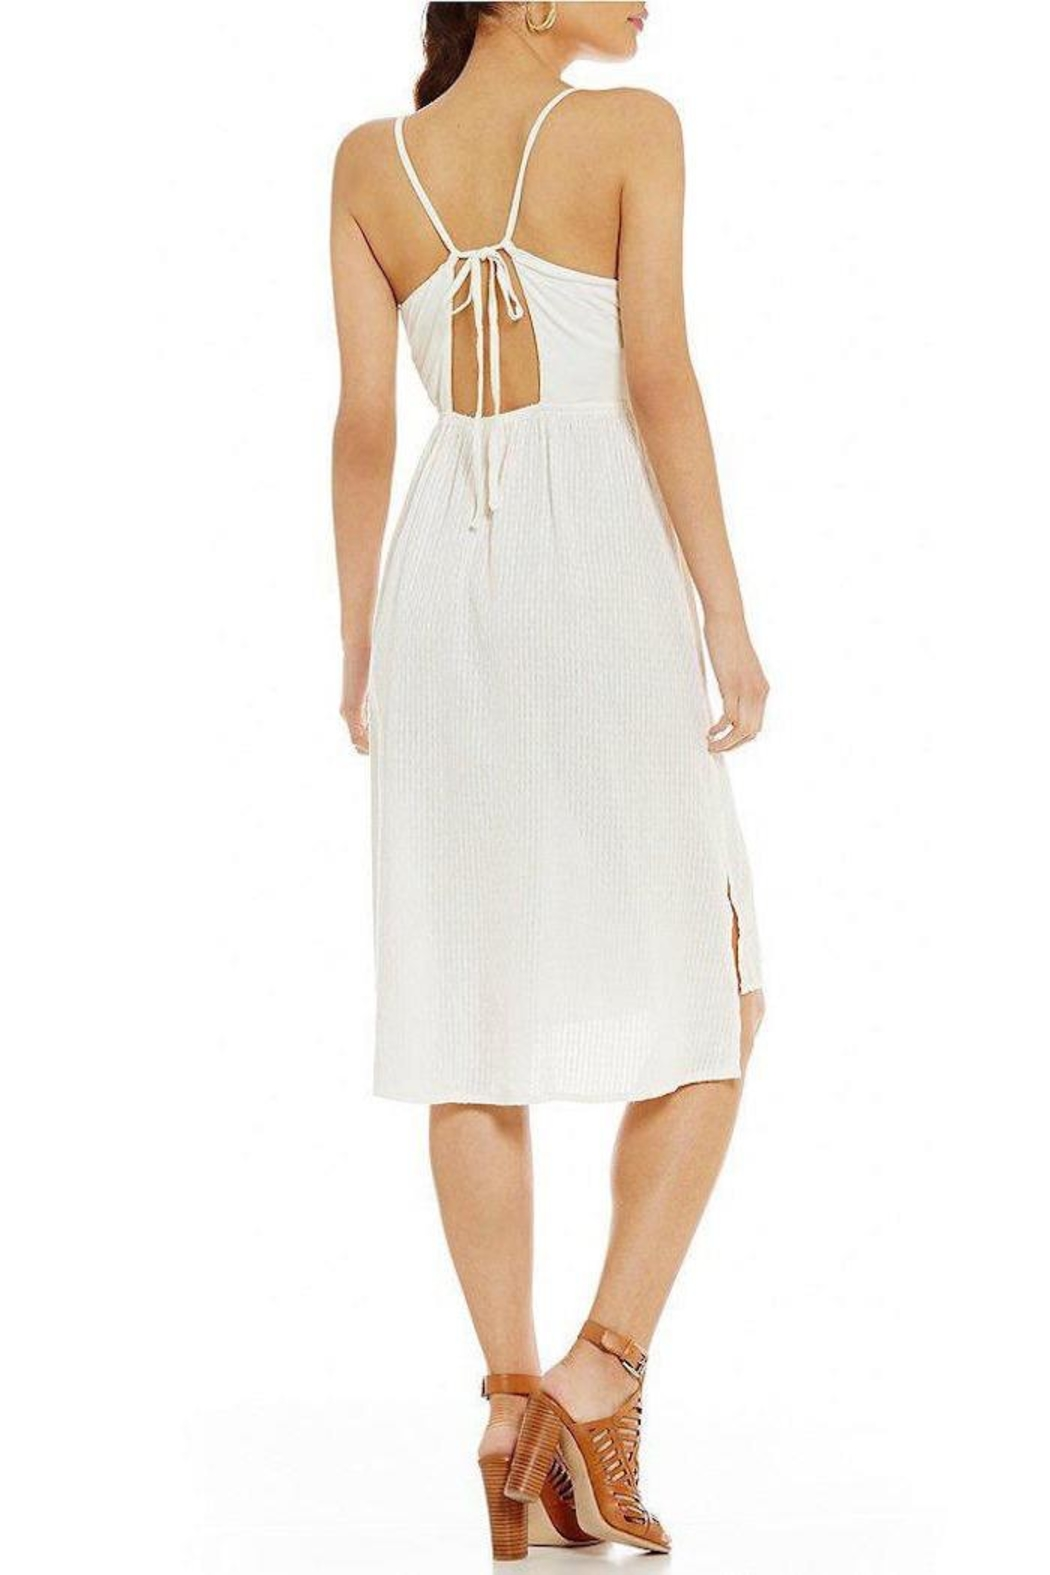 Roxy Resolutions White Dress - Side Cropped Image